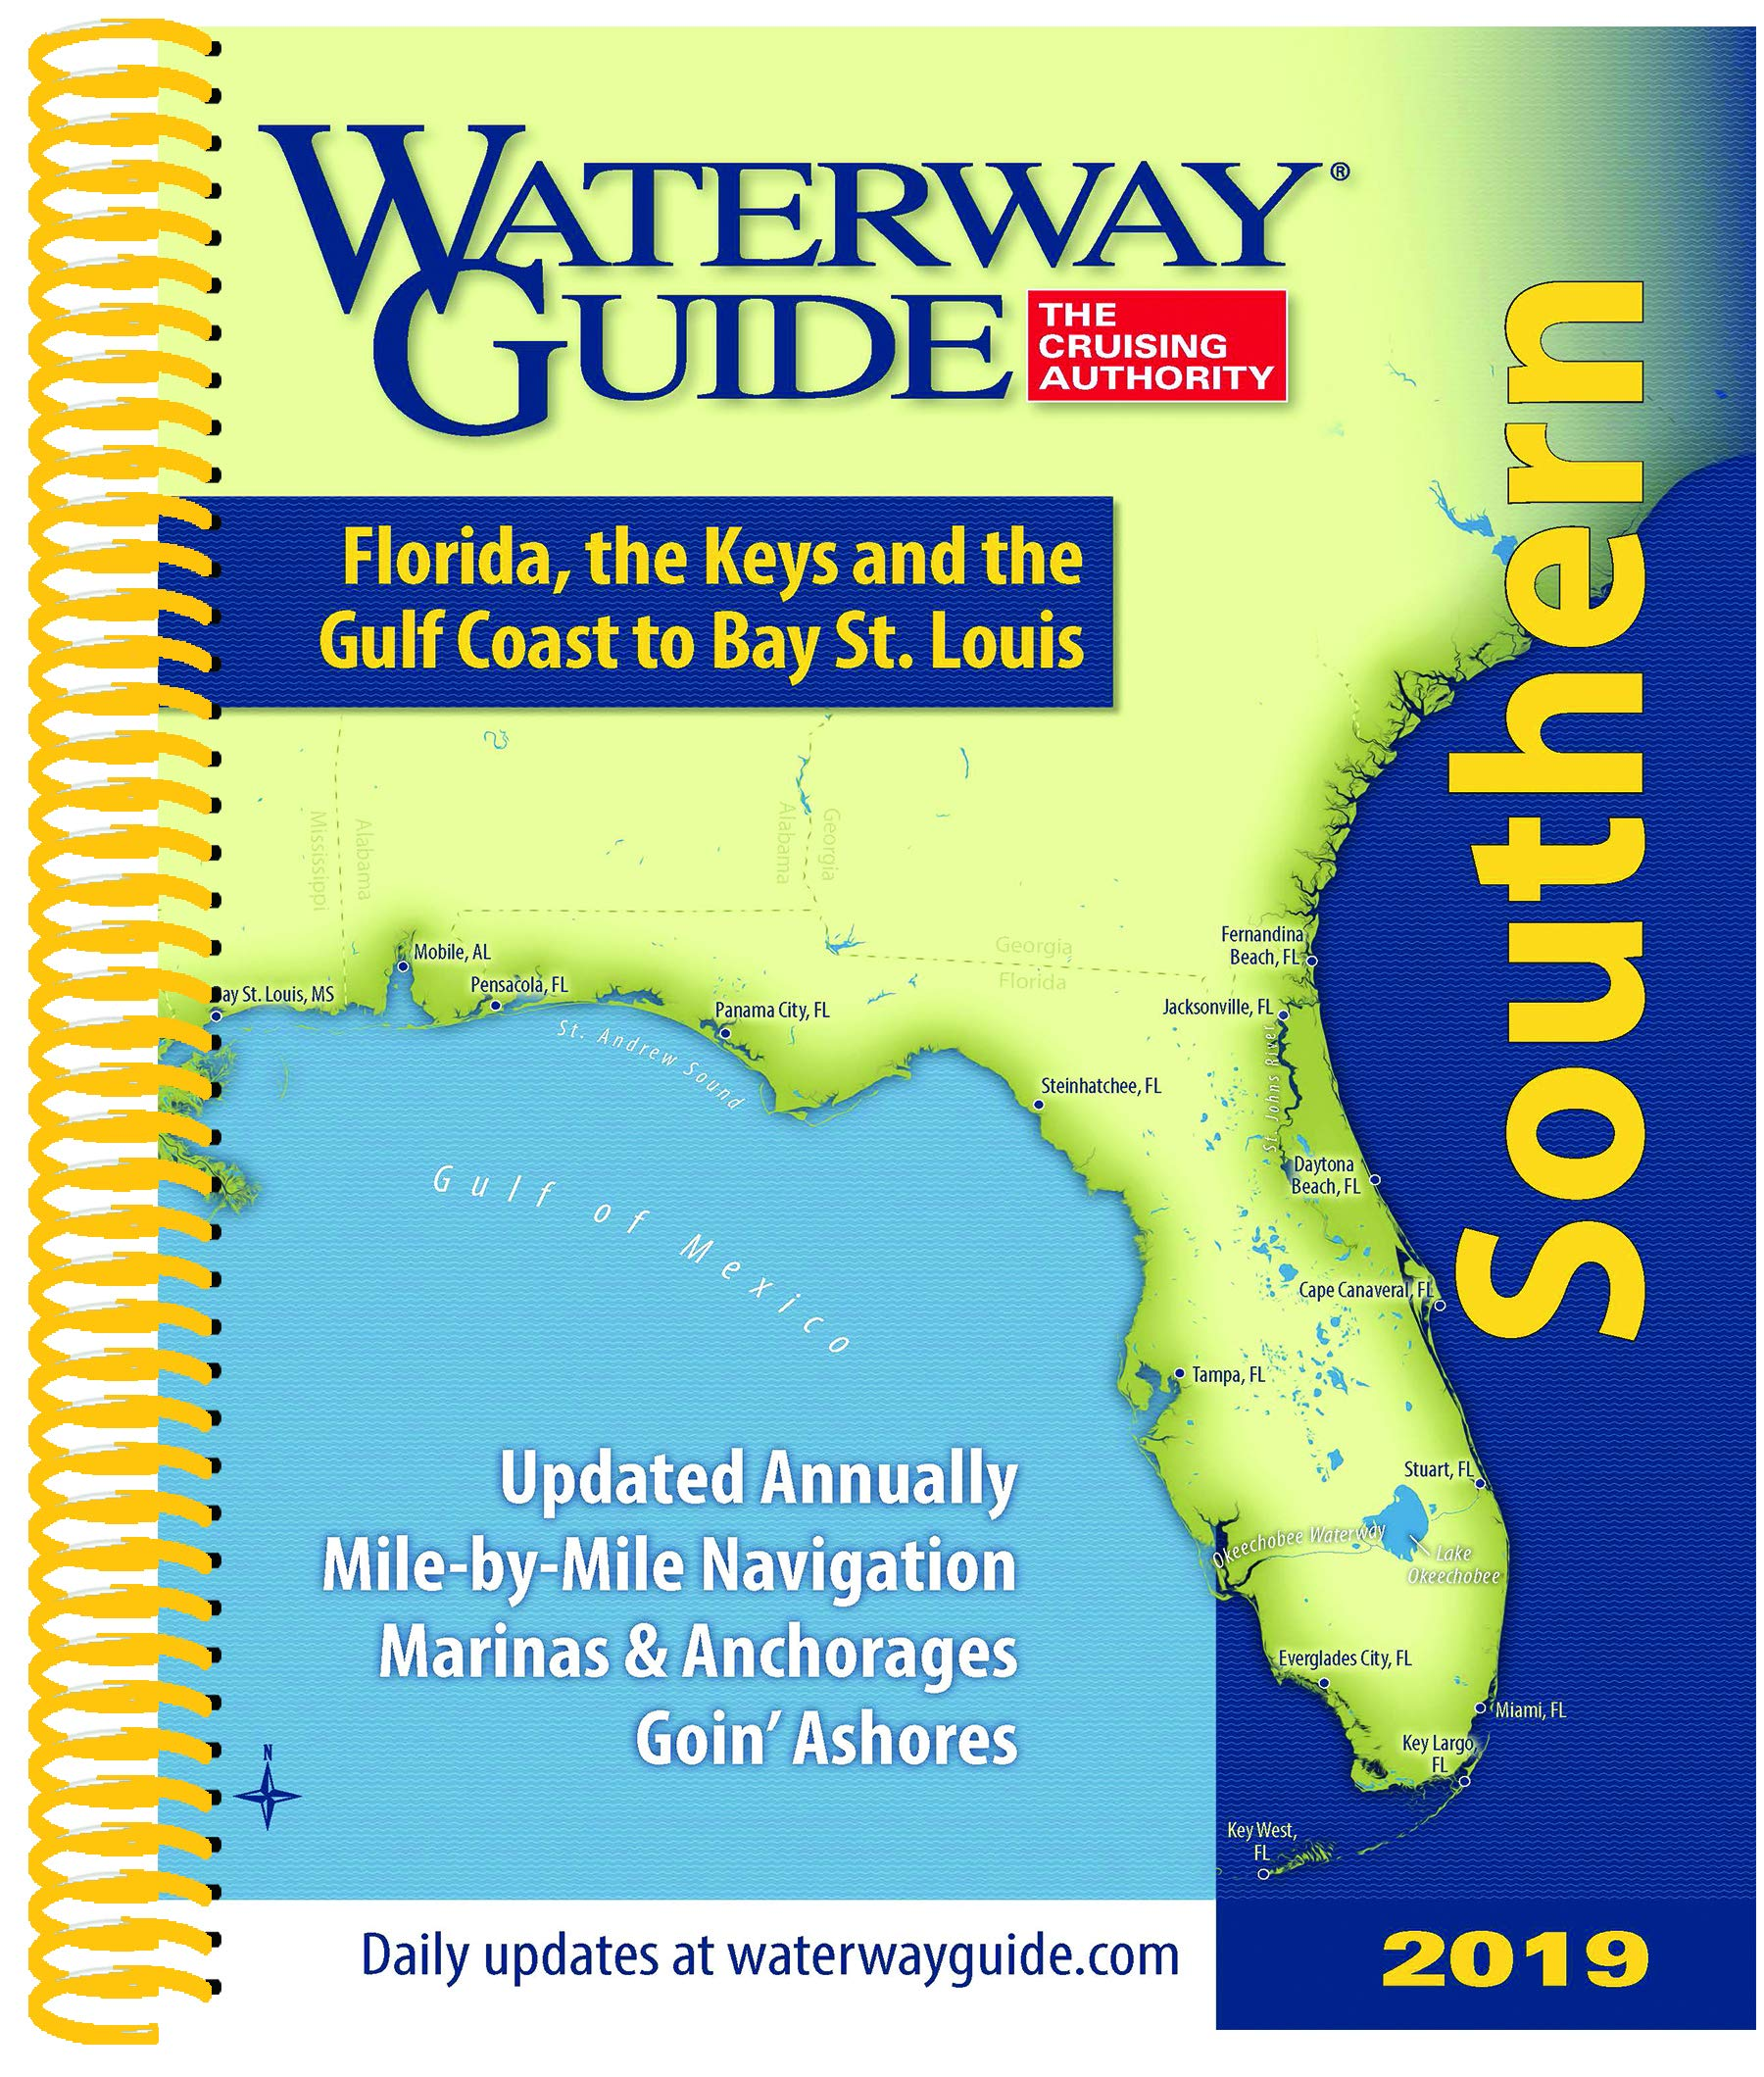 Waterway Guide Southern 2019: Florida, the Keys and the Gulf Coast by Waterway Guide